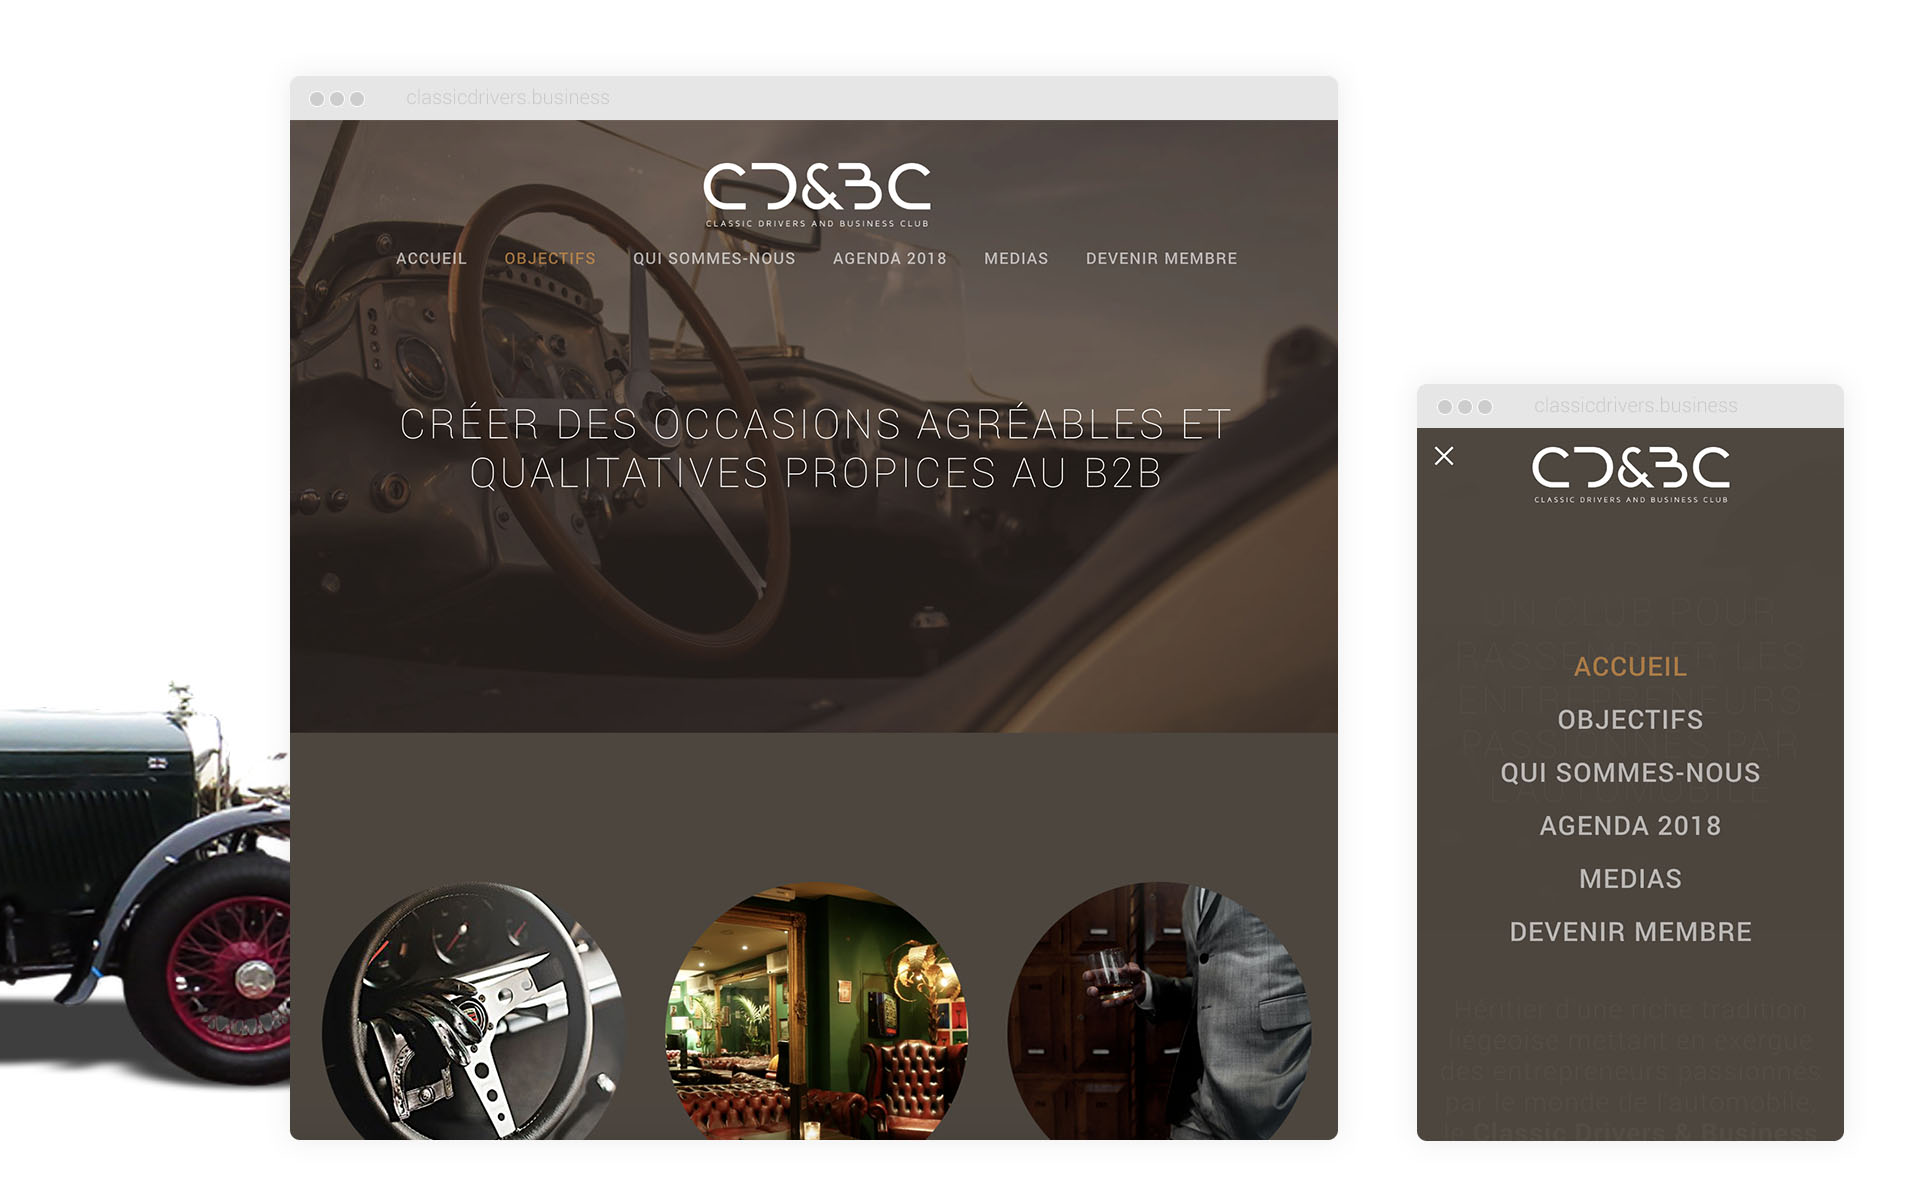 CD&BC website design.jpg